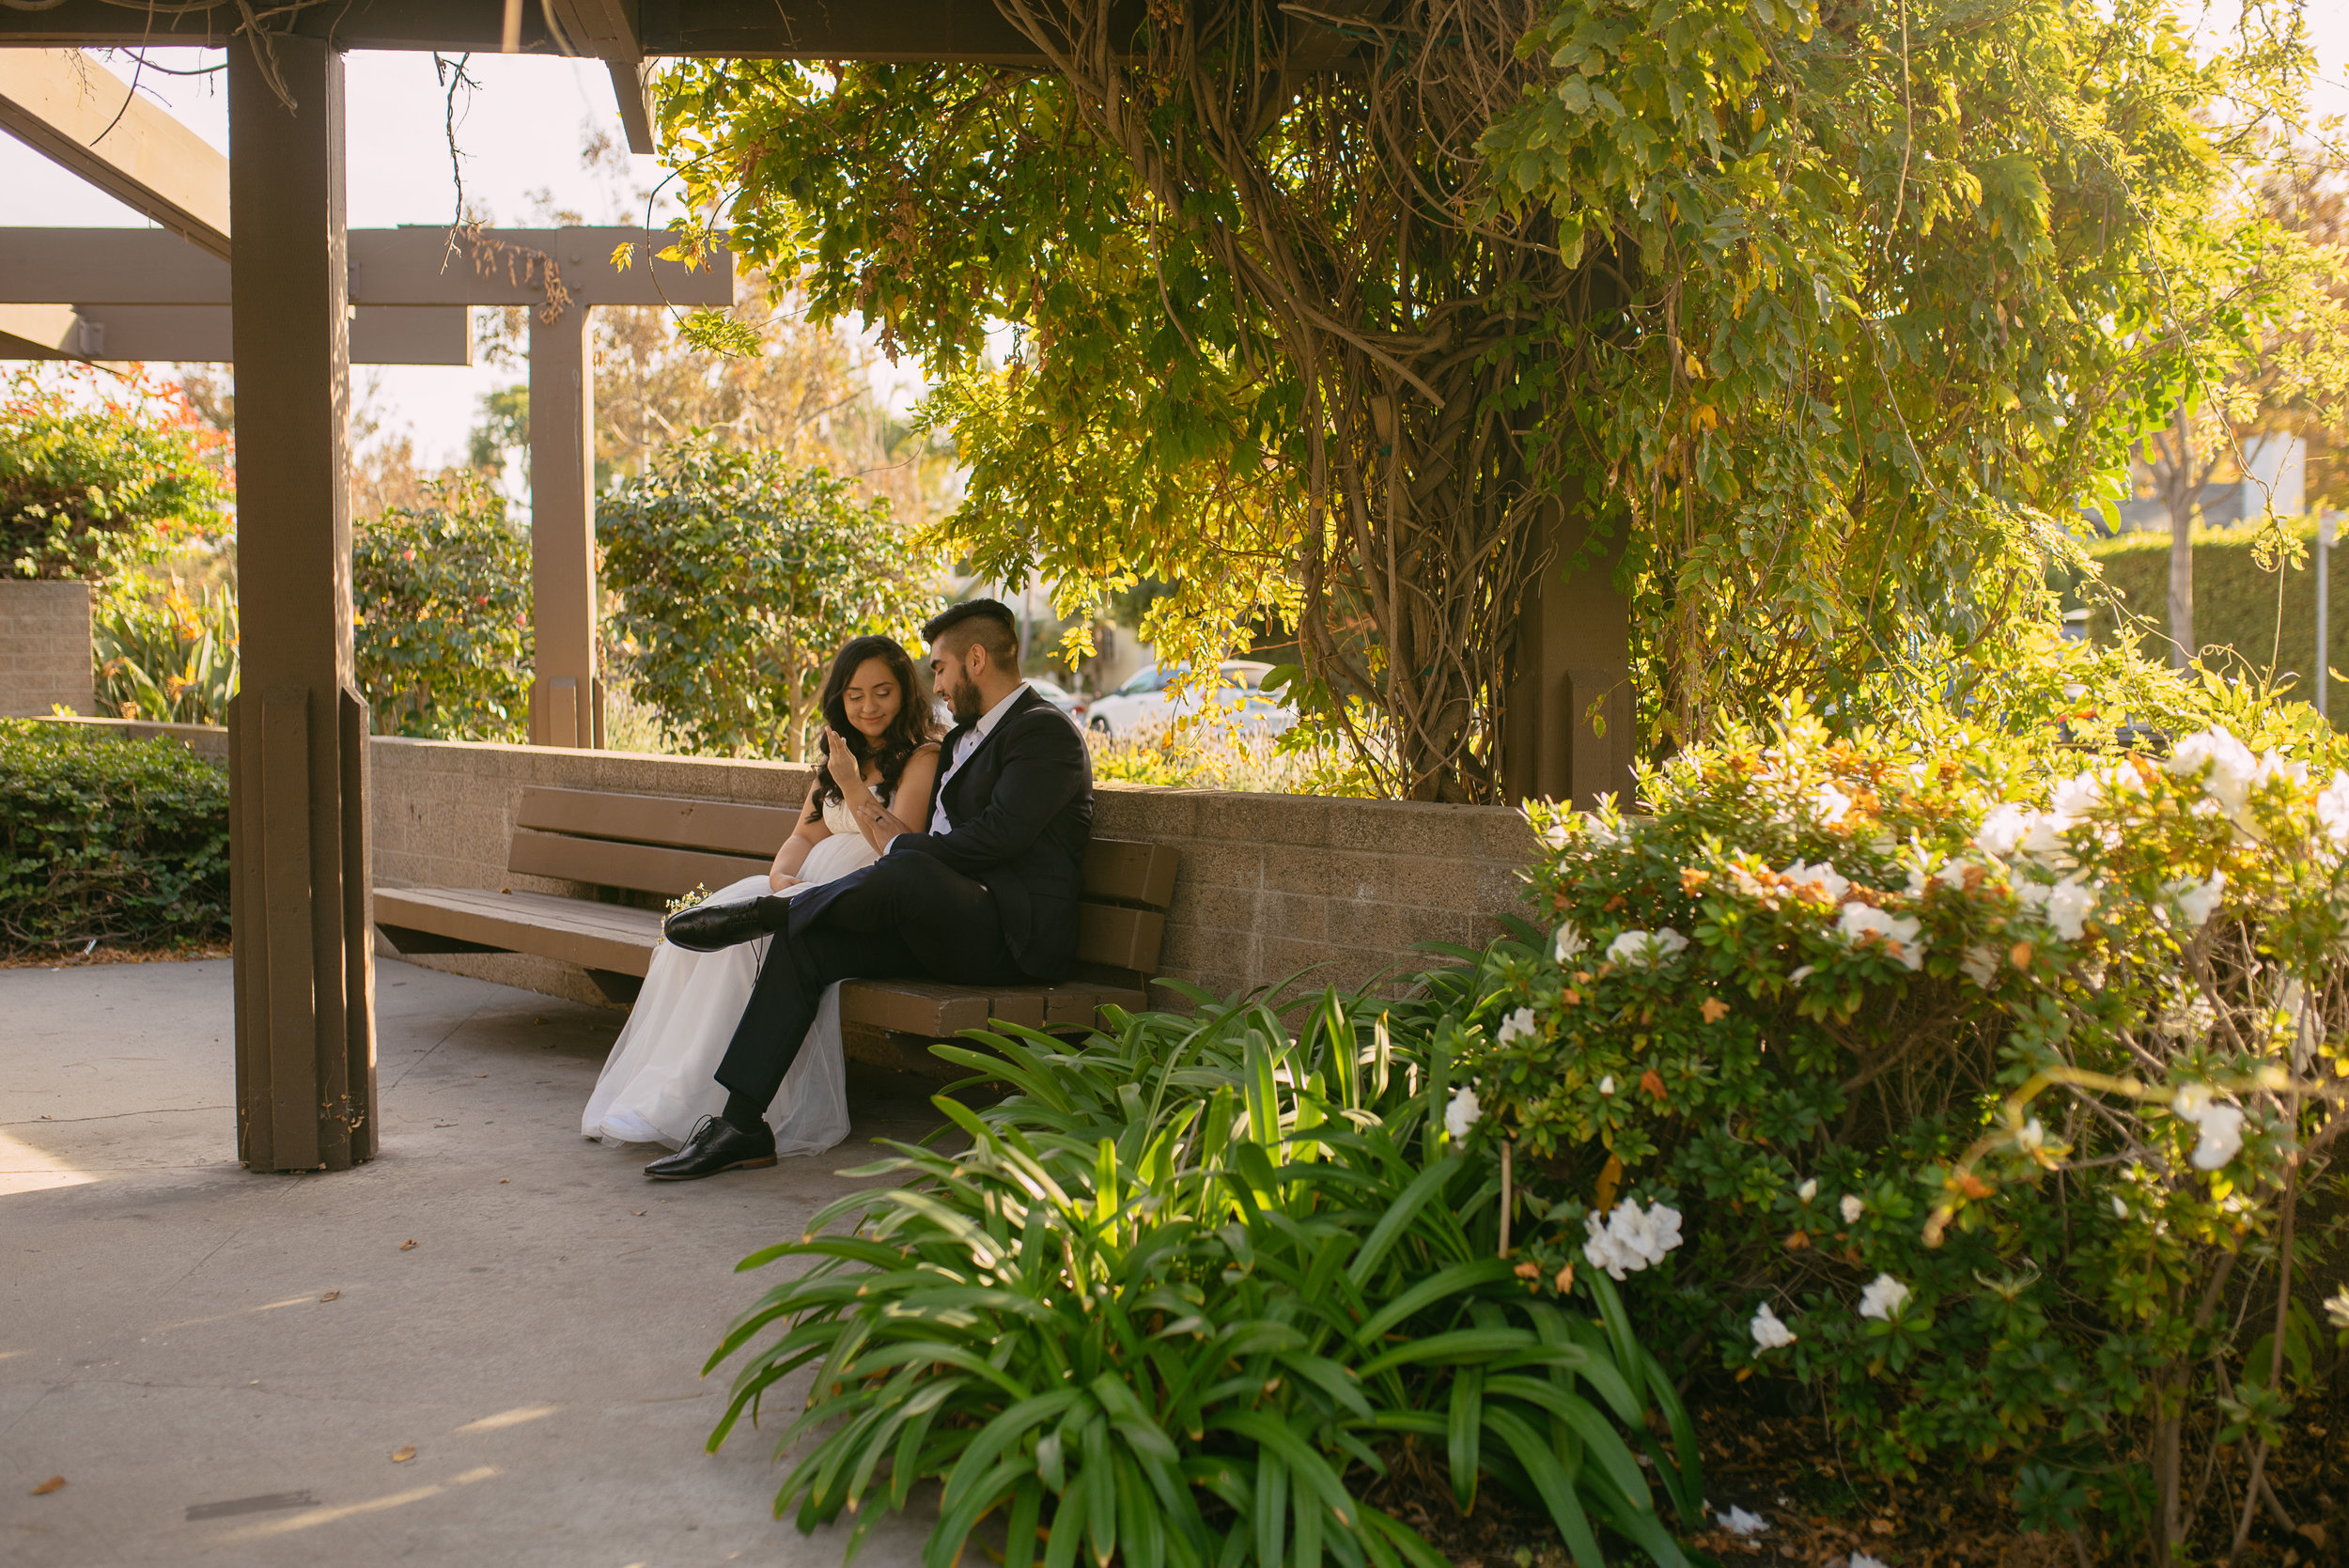 beverly-hill-courthouse-elopement-yanira-1-55.jpg